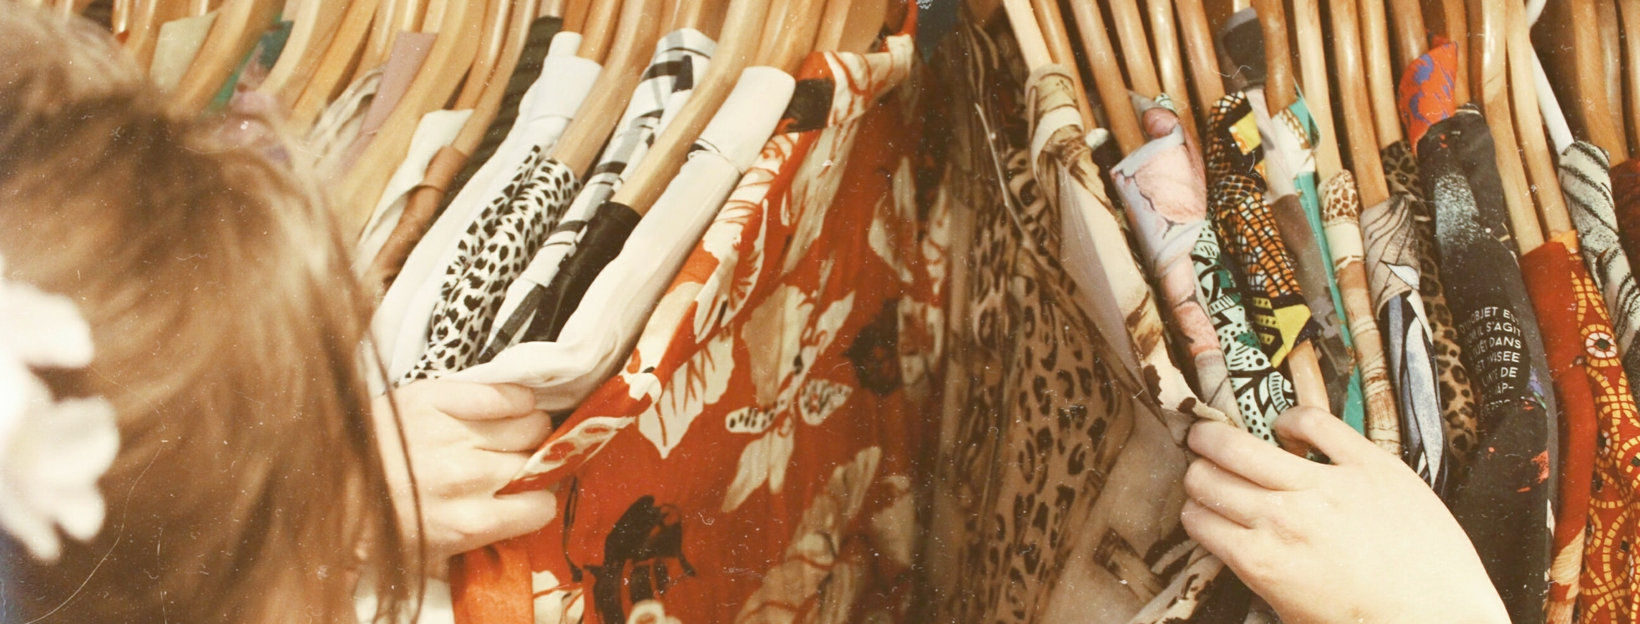 5 Tips on How to Start Shopping Sustainably, Info on Slow Fashion